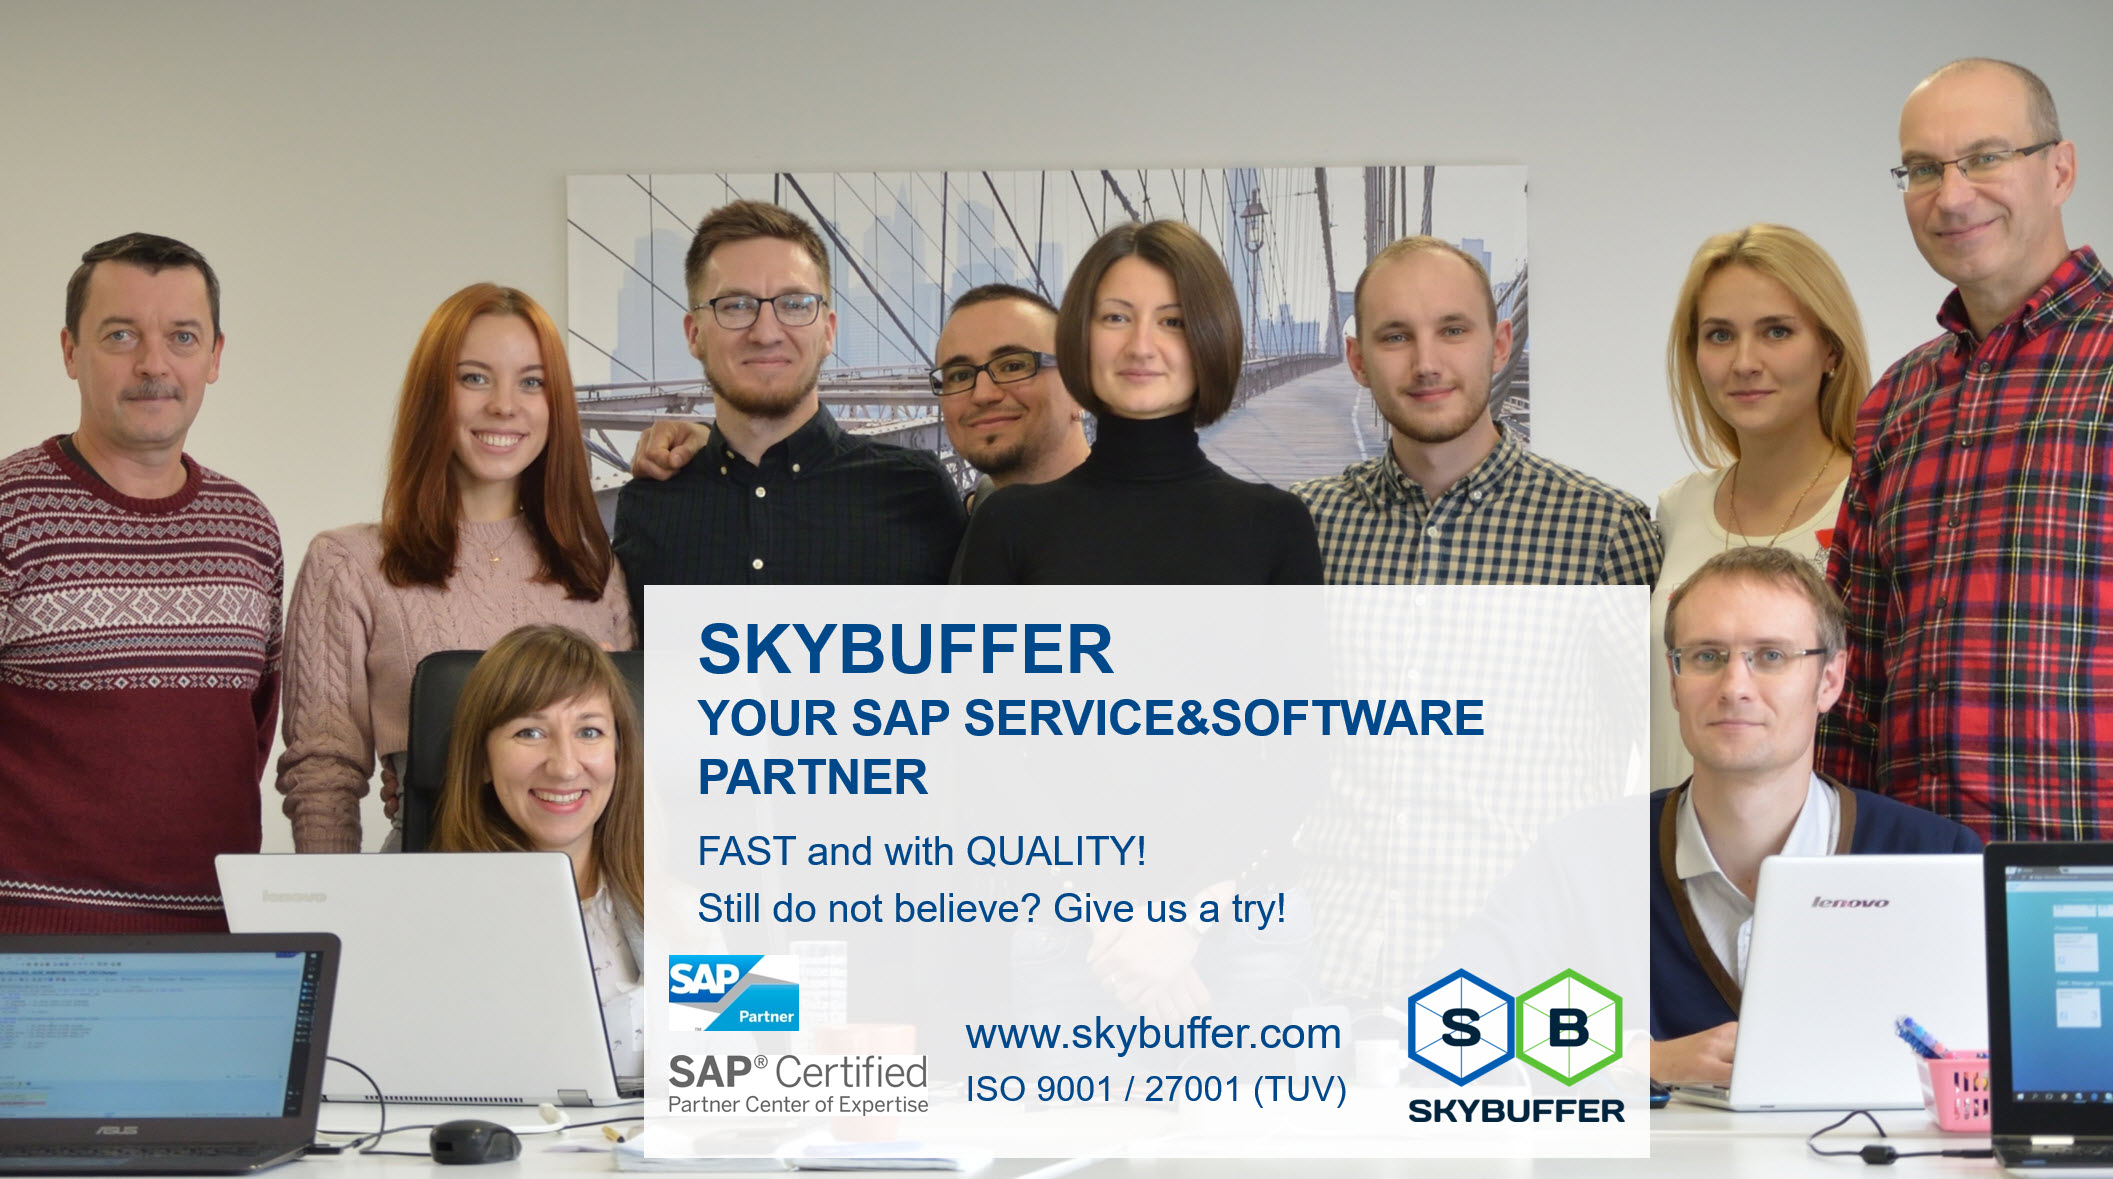 skybuffer_your_sap_service_partner